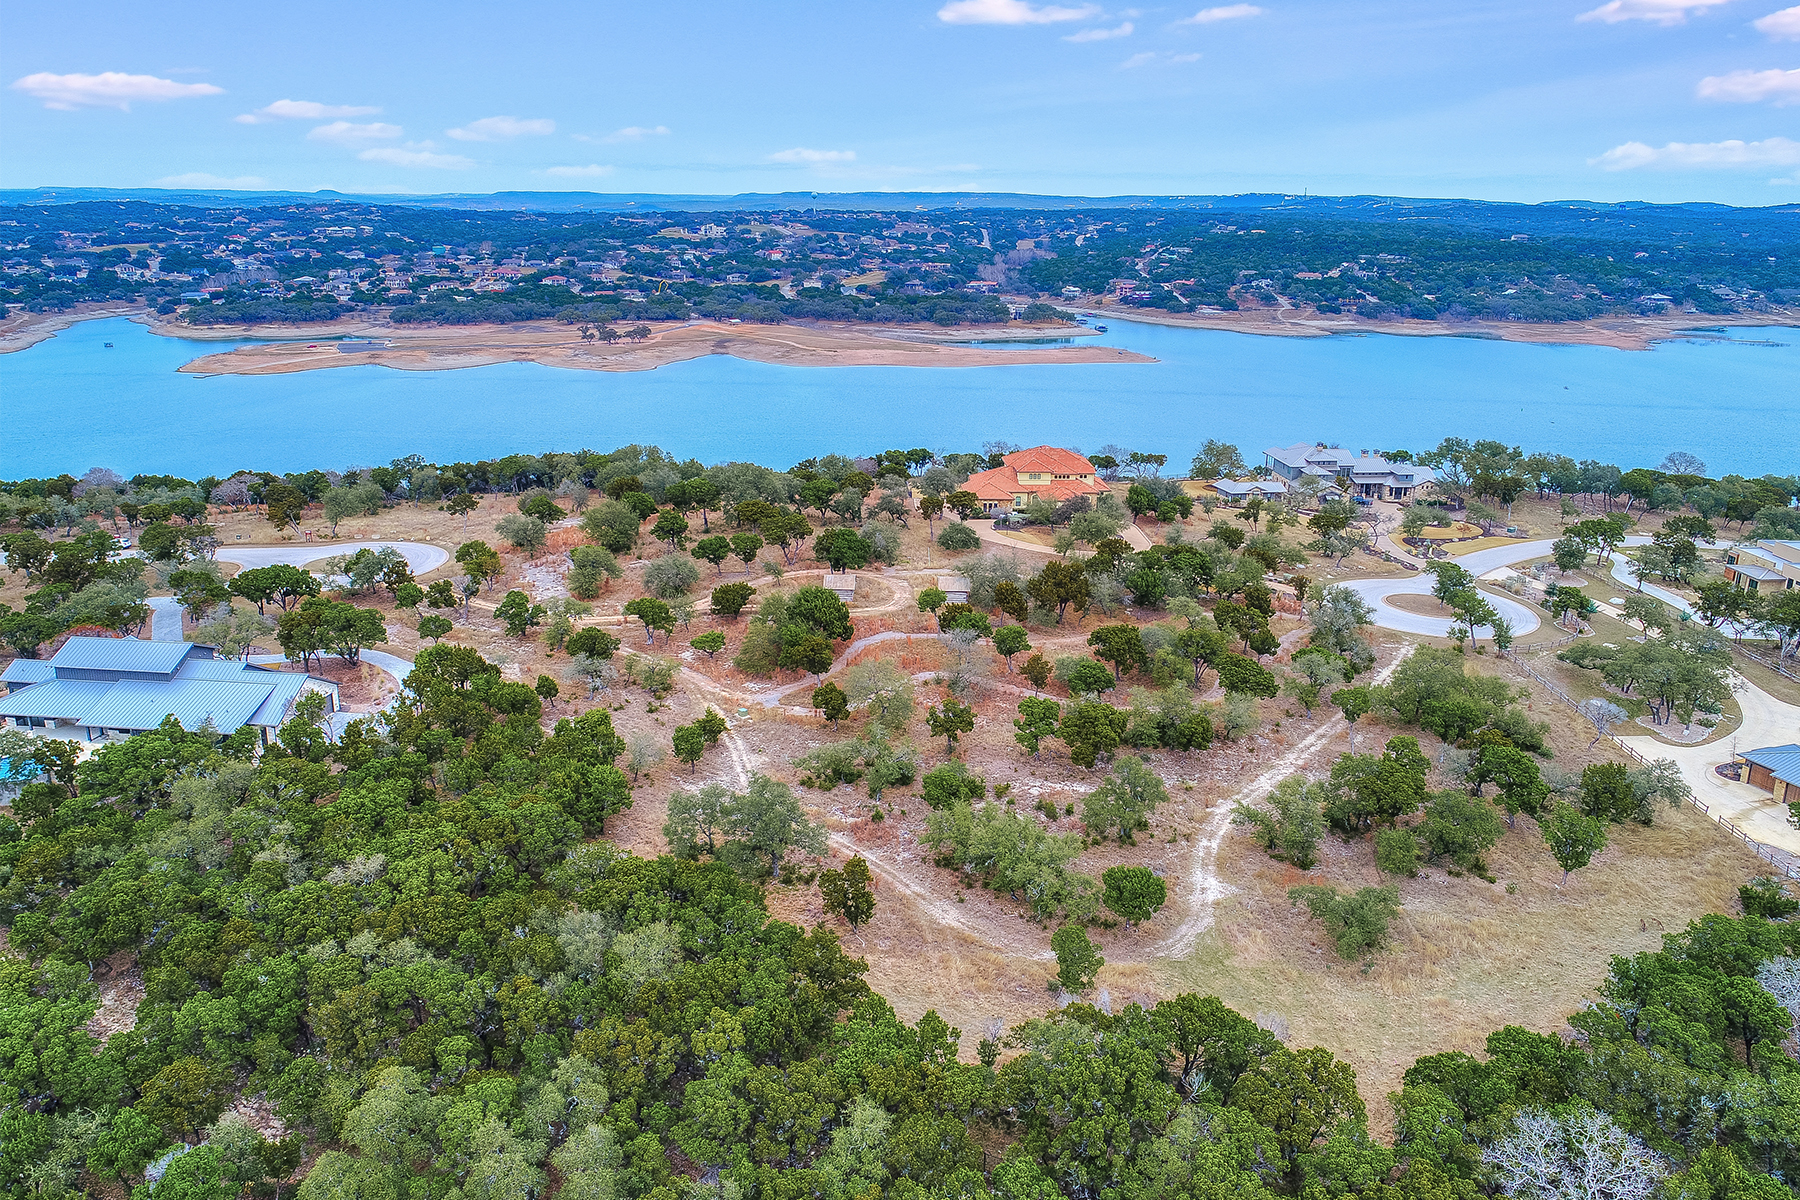 Land for Sale at Lot in Luxury Resort-Style Gated Community 1805 Poco Bueno Court Spicewood, Texas 78669 United States